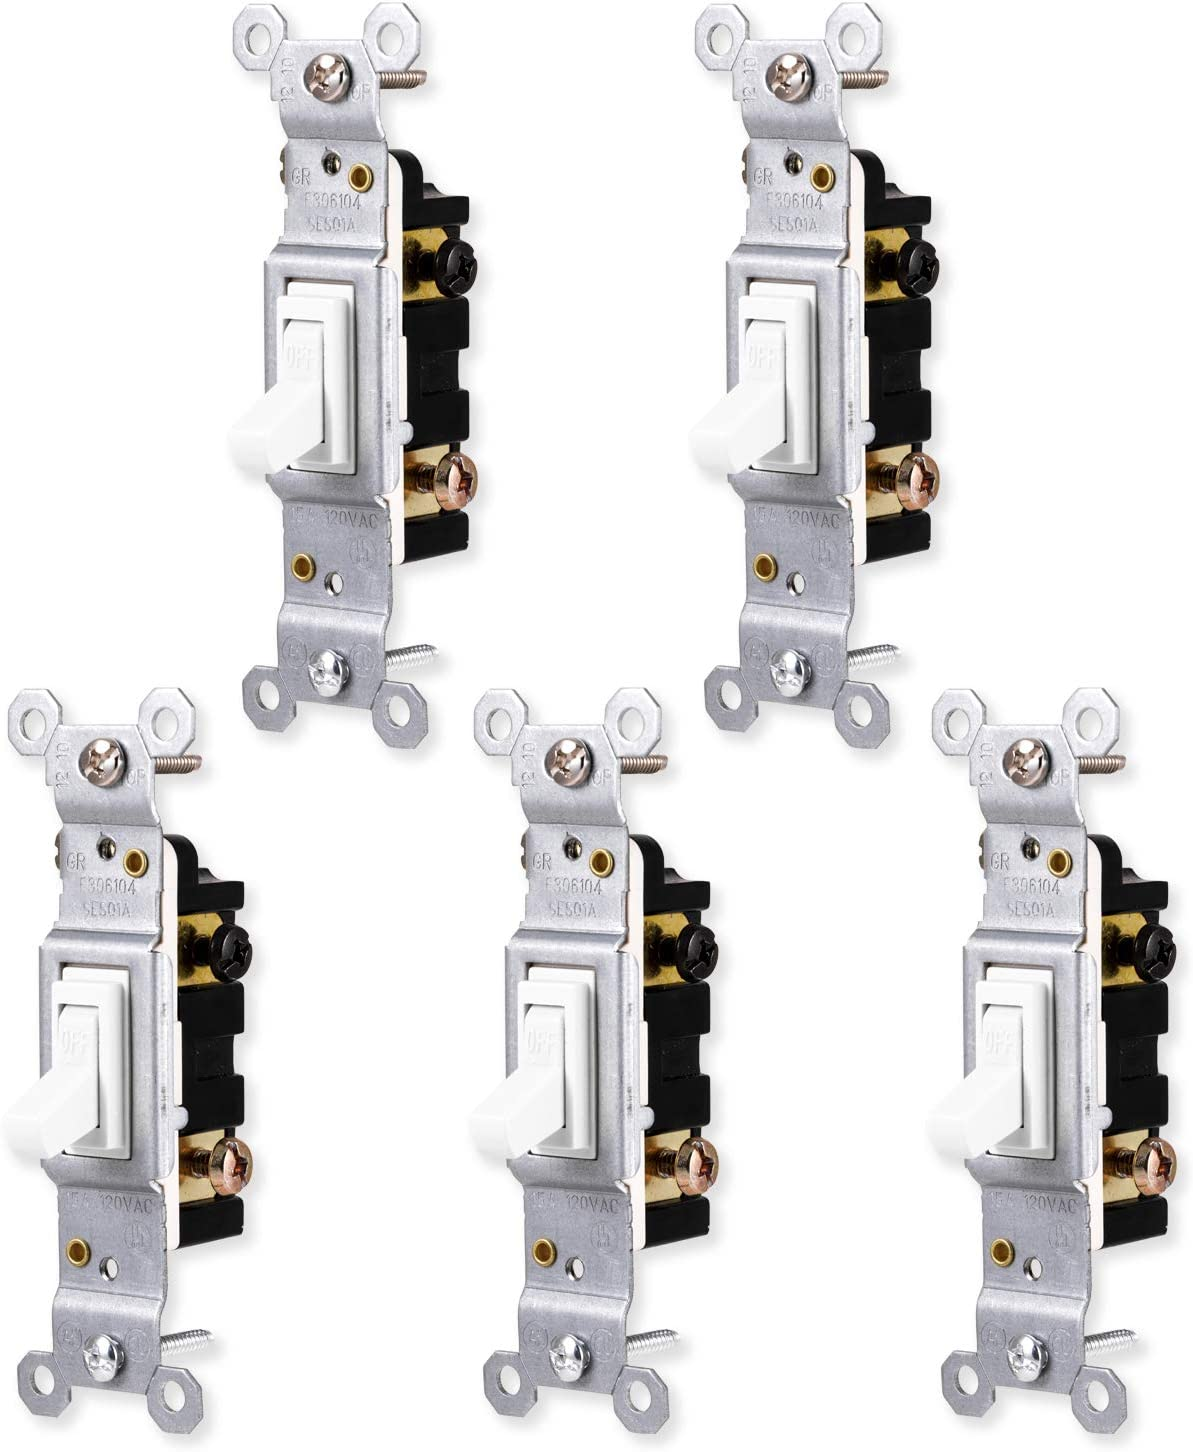 GE Grounding Toggle 5 Pack, Single Pole, in Wall On/Off Fan & Light Replacement, 15 Amp, for Home, Office & Kitchen, UL Listed, White, 44034 light switches,